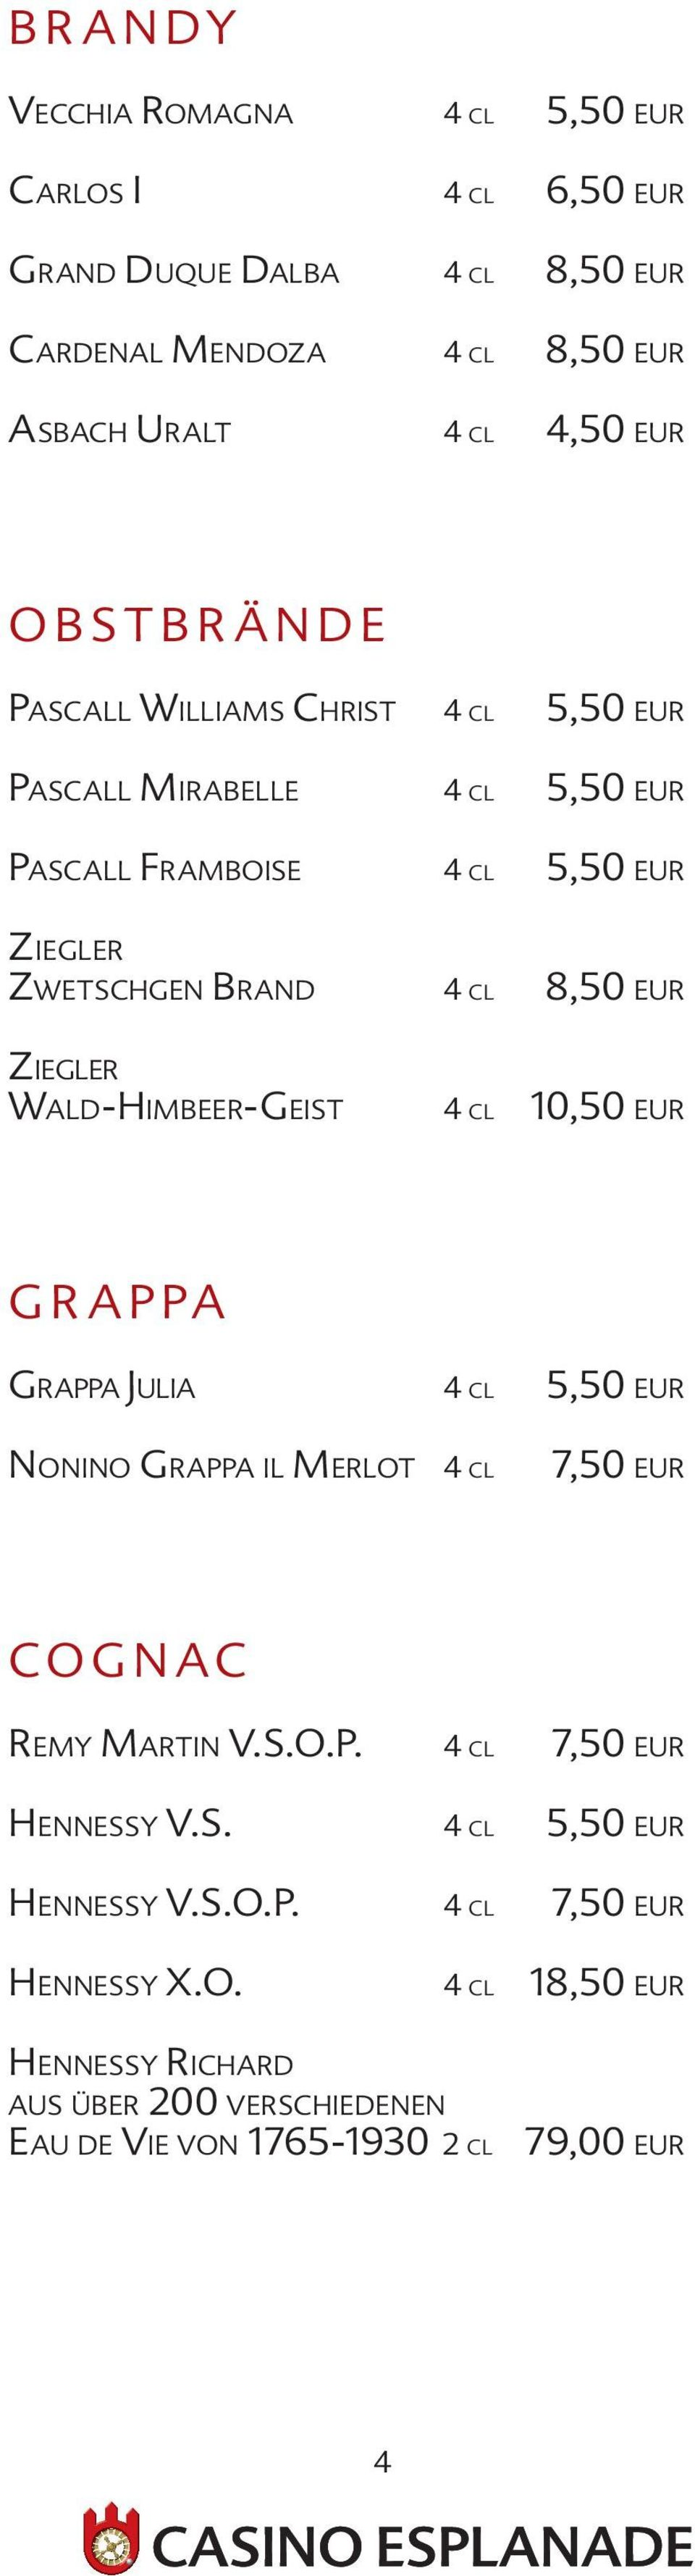 Ziegler Wald-Himbeer-Geist 4 cl GRAPPA Grappa Julia 4 cl 5,50 eur Nonino Grappa il Merlot 4 cl 7,50 eur COGNAC Remy Martin V.S.O.P. 4 cl 7,50 eur Hennessy V.